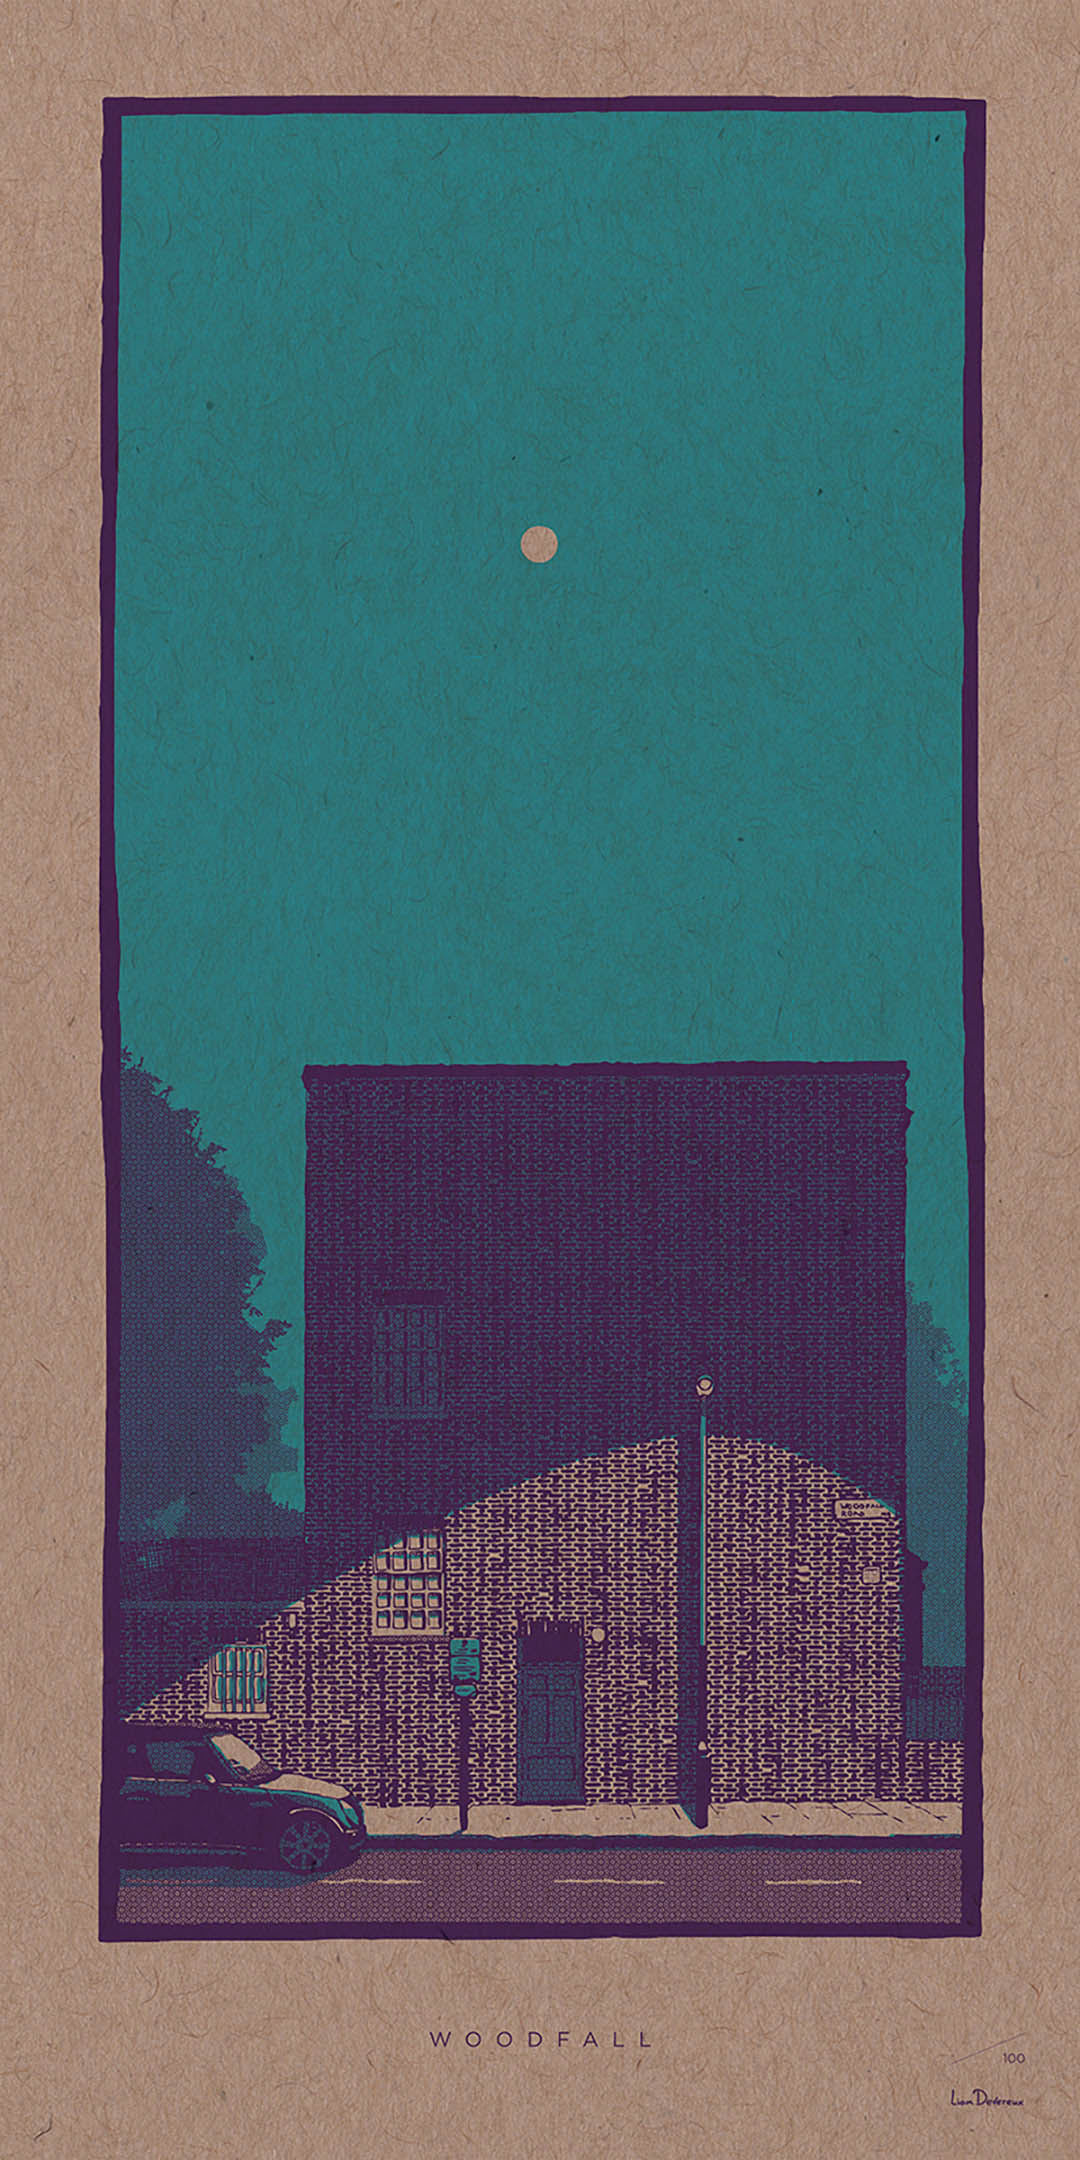 Woodfall - Liam Devereux | 30x60mm Giclee print on 450mic recycled Kraft card